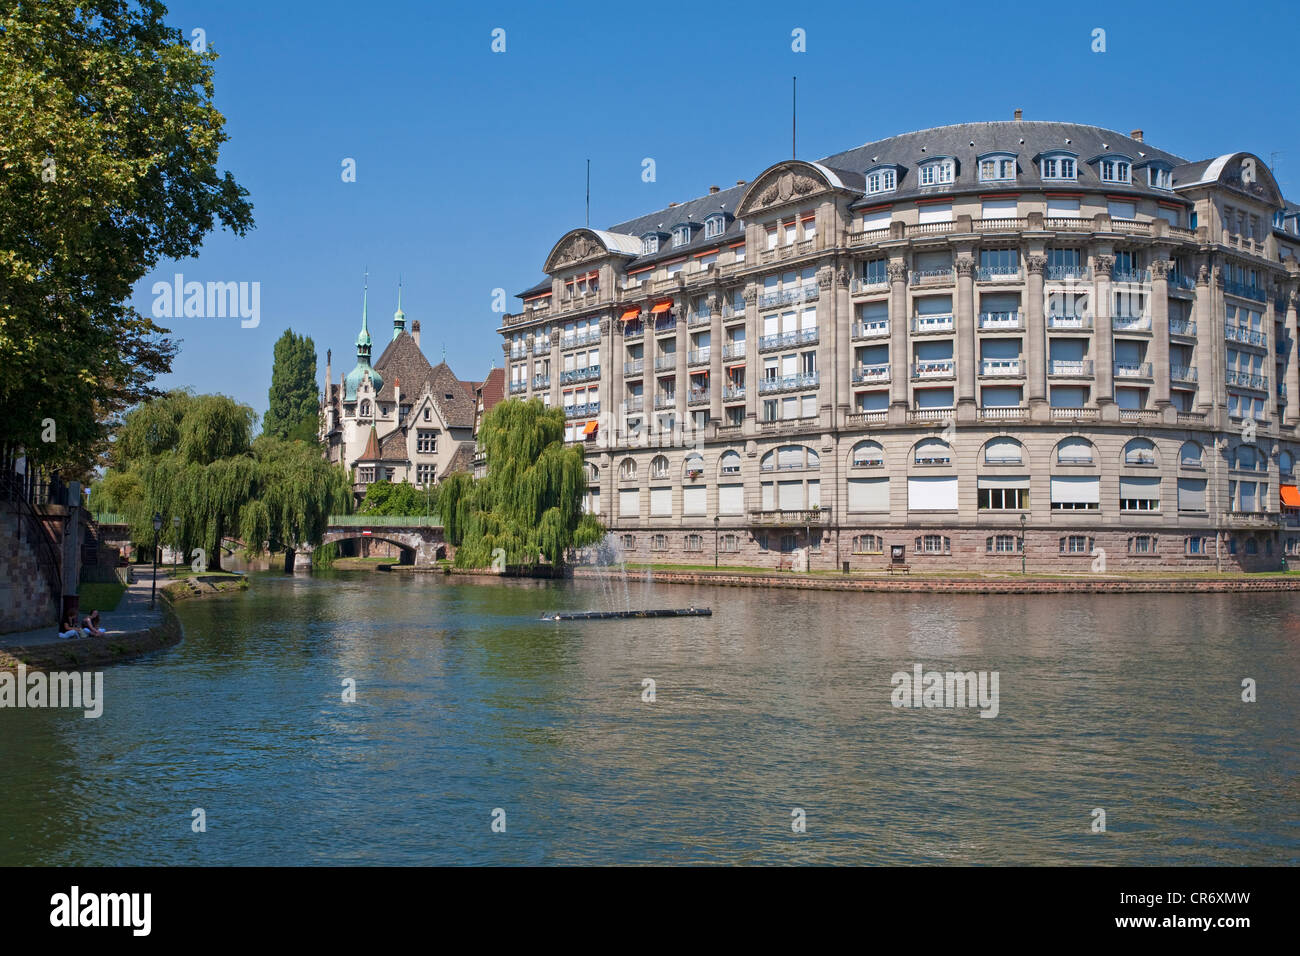 Lycee, Pontonniers, River Ill, Strasbourg, Alsace, France, Europe - Stock Image